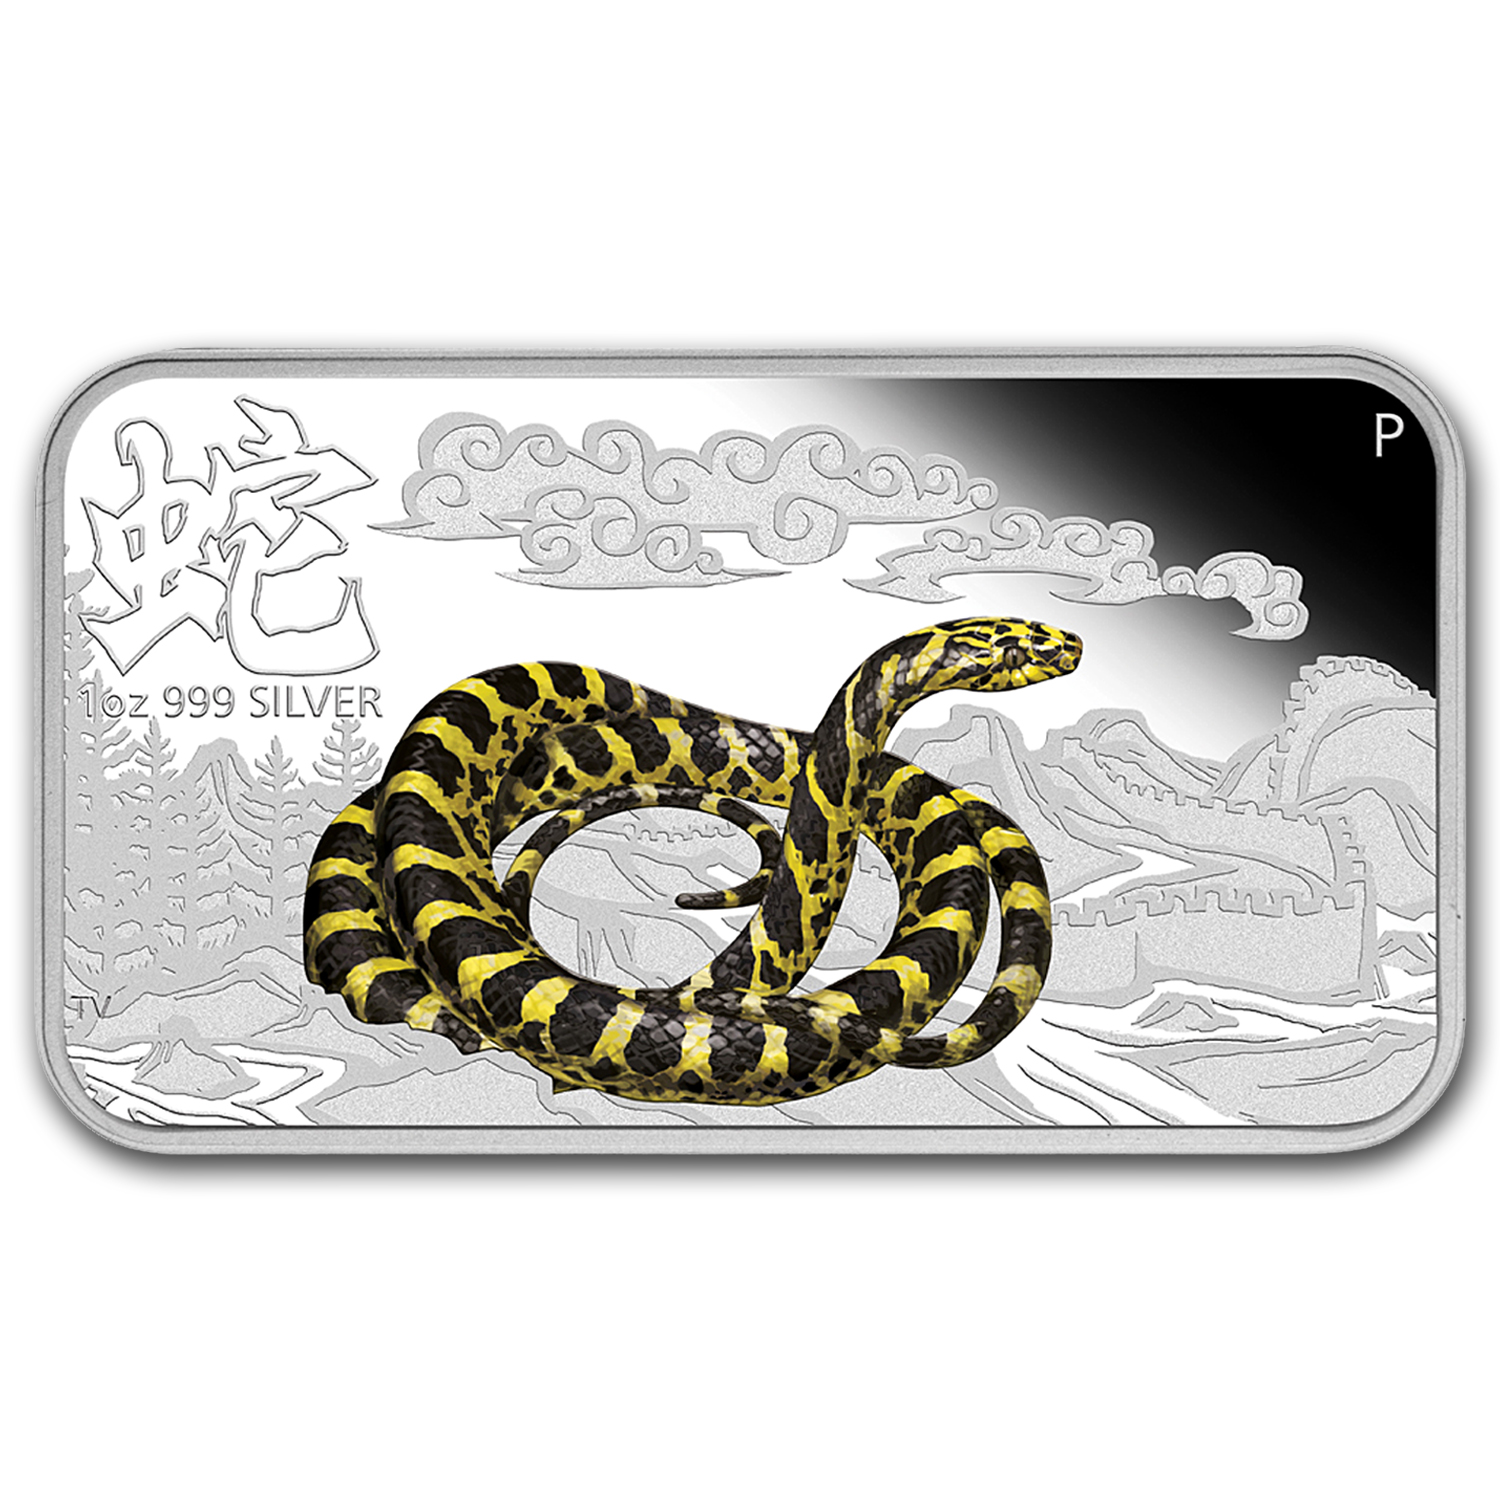 2013 4-Coin Australia 1 oz Silver Snake Proof Set (Rectangles)